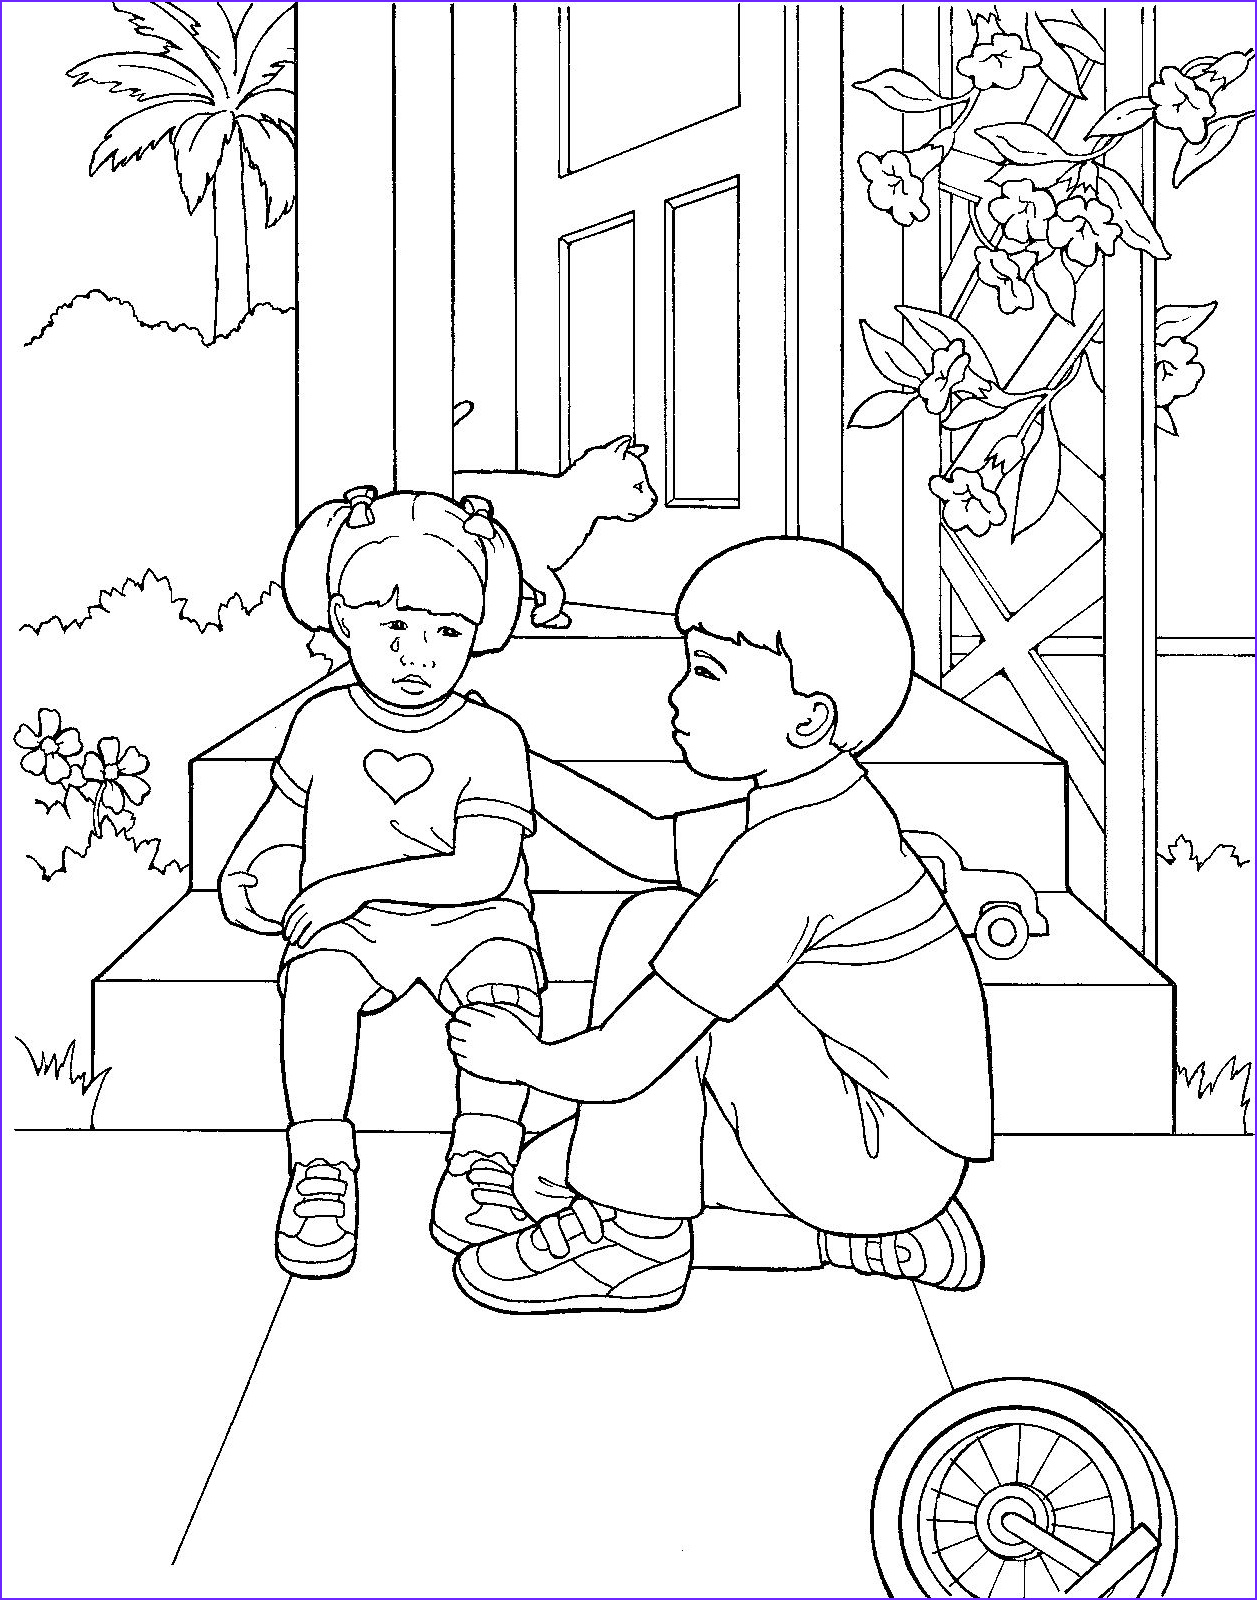 Mormon Coloring Pages Beautiful Photos Primary Coloring Page From Lds A Little Boy forts